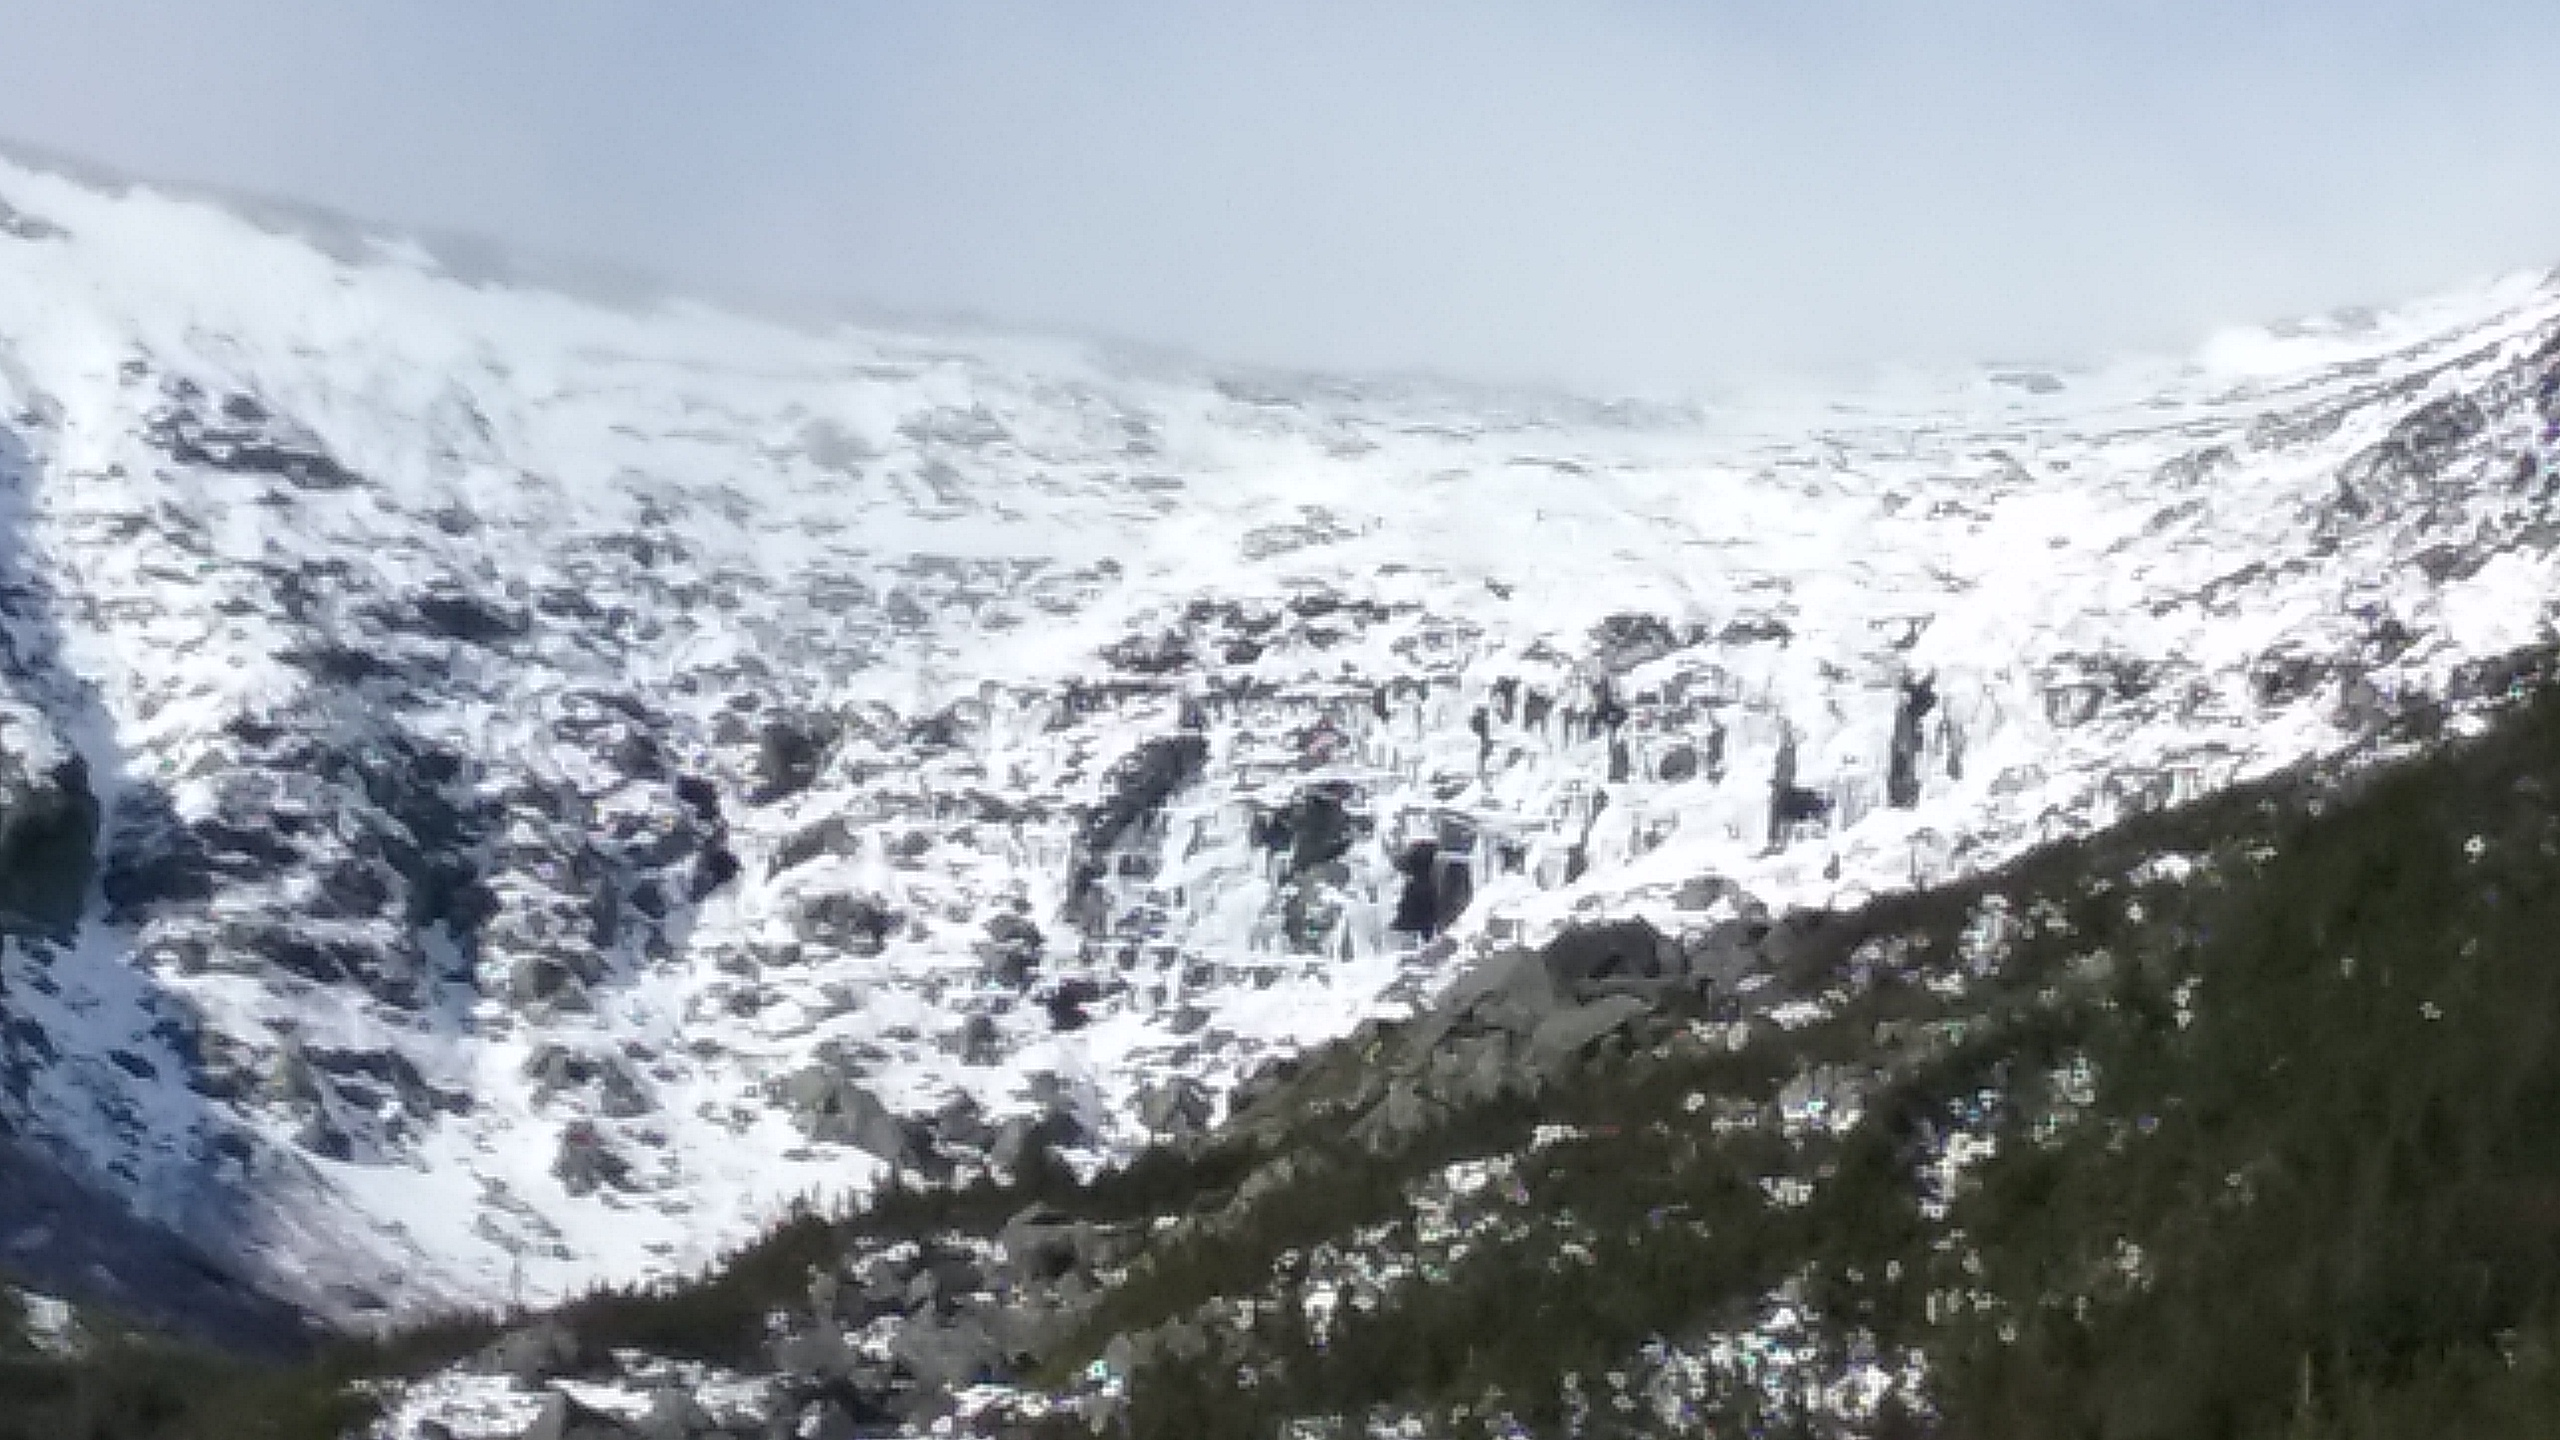 Headwall area with loads of ice with varying degrees of holding power. No doubt the cliff will shed some ice this week.